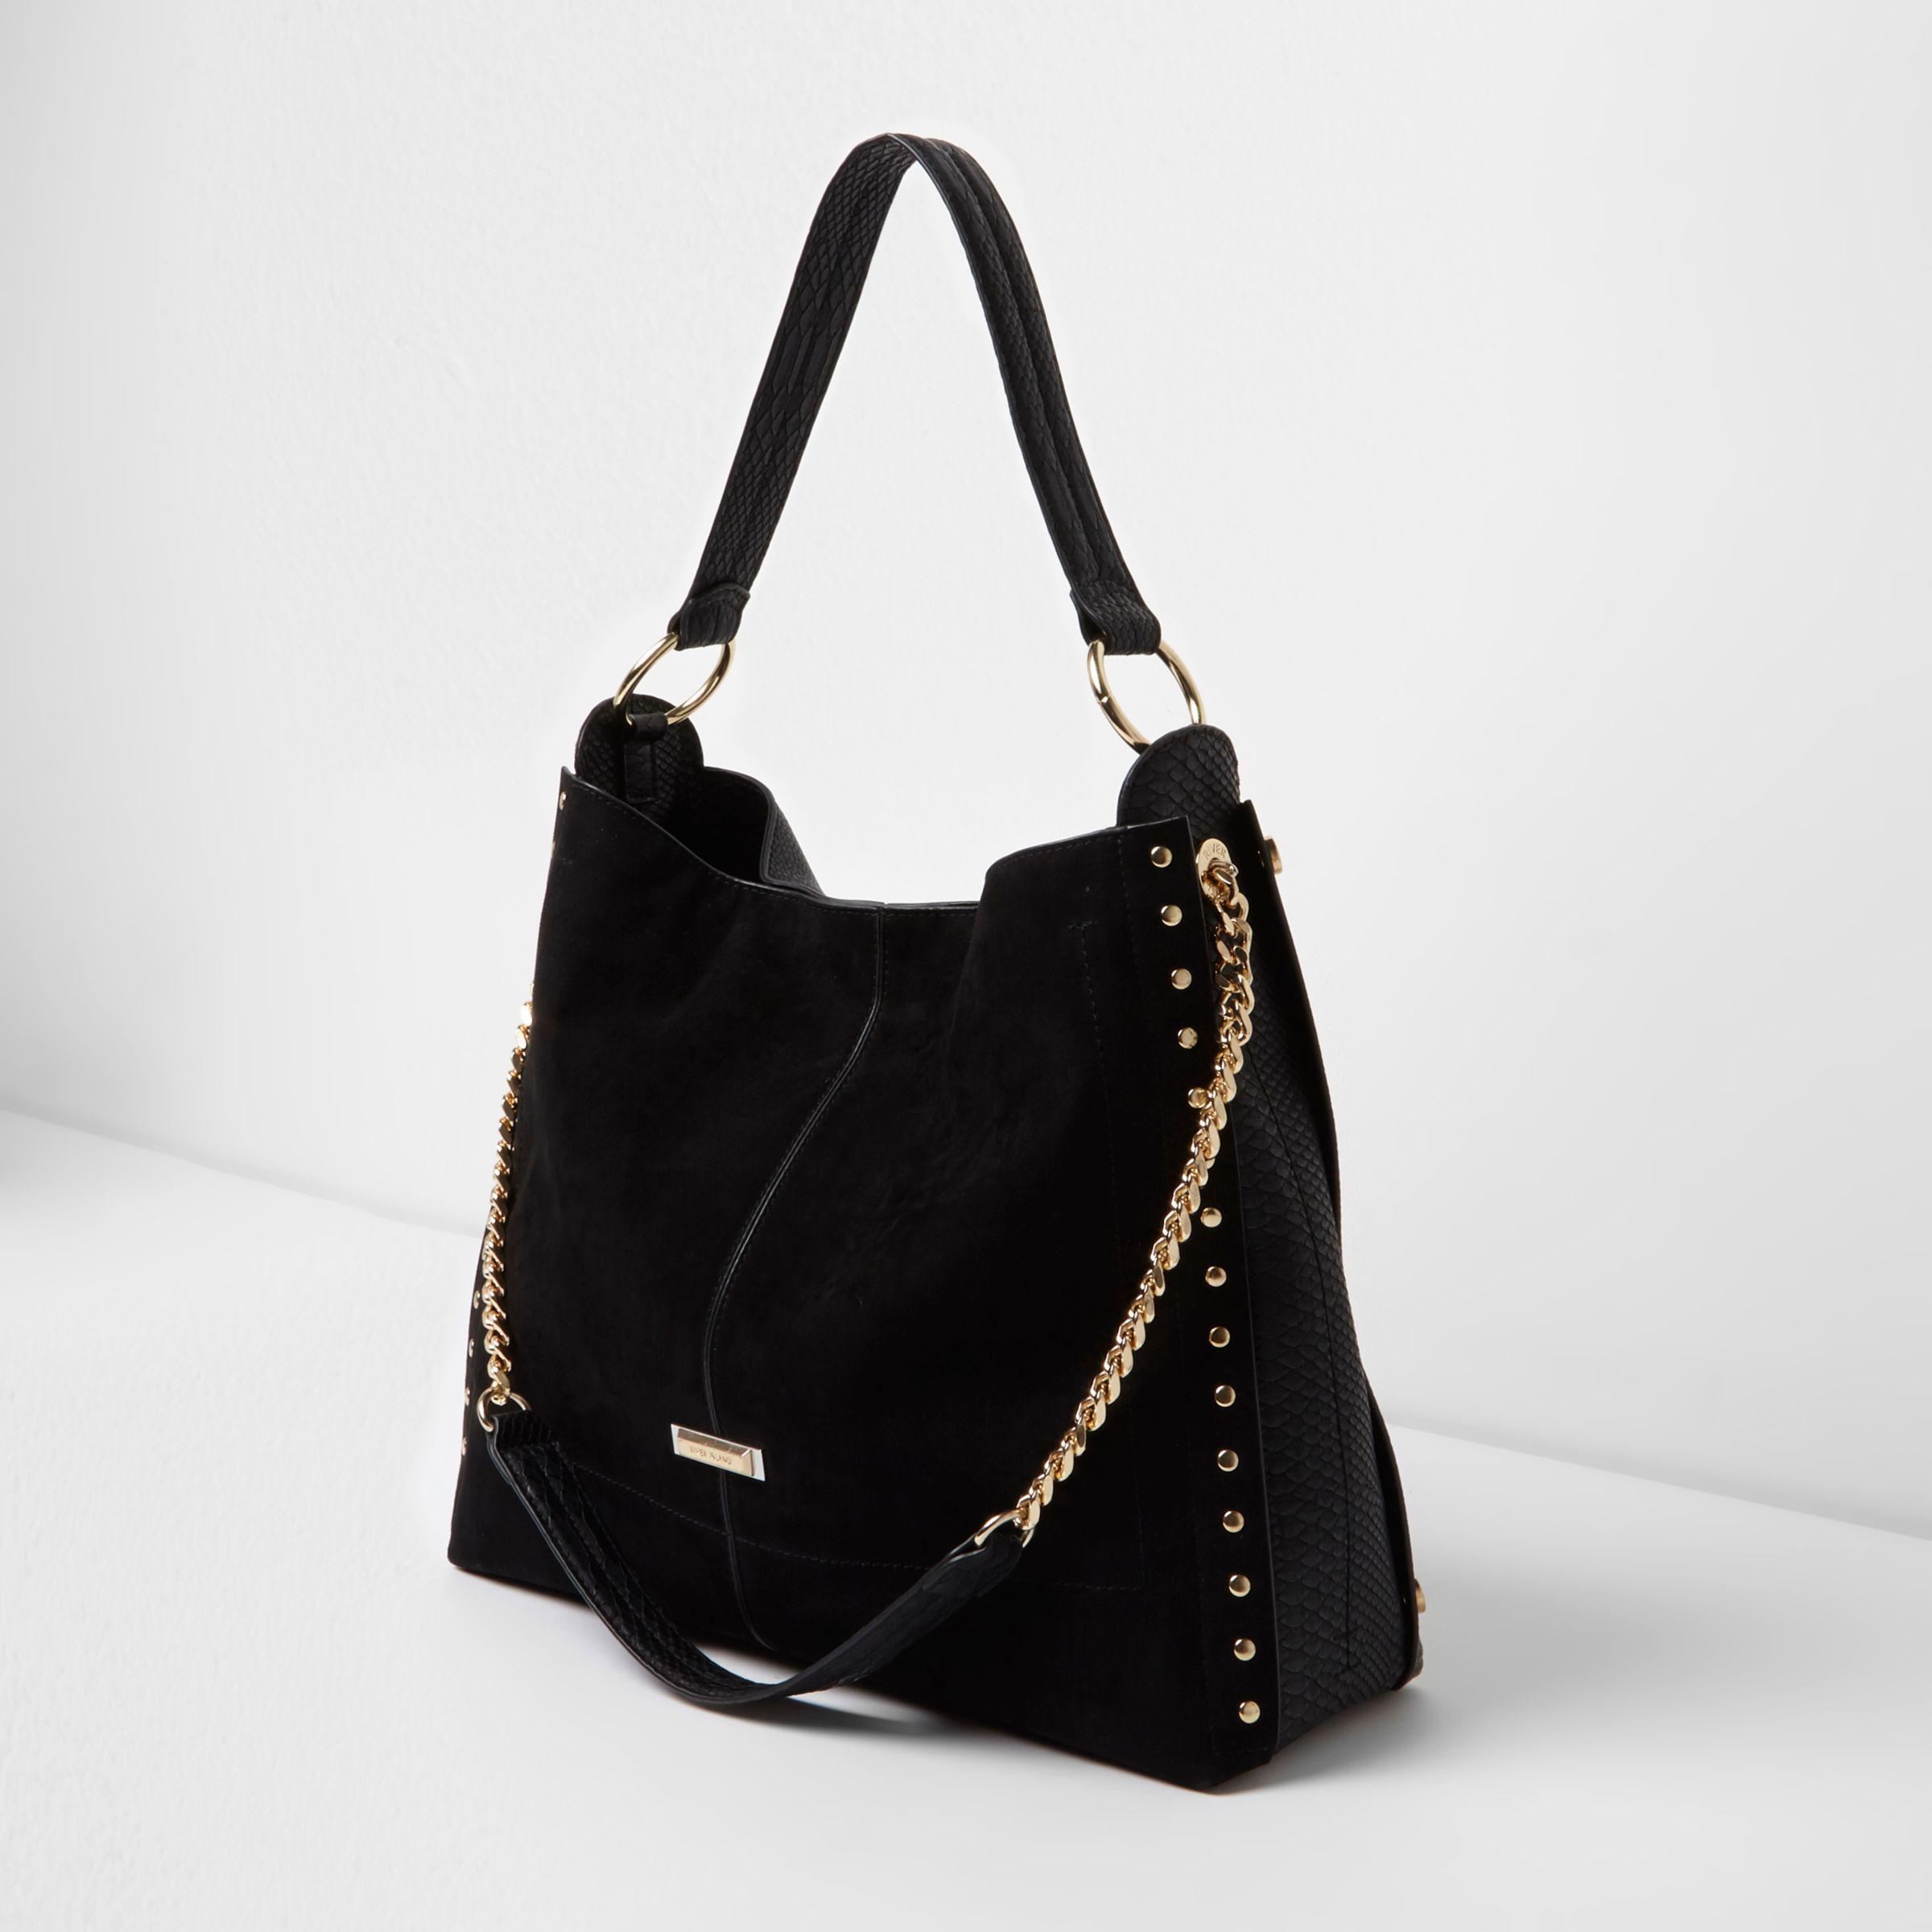 02d6a852051 River Island Black Studded Oversized Slouch Chain Bag in Black - Lyst